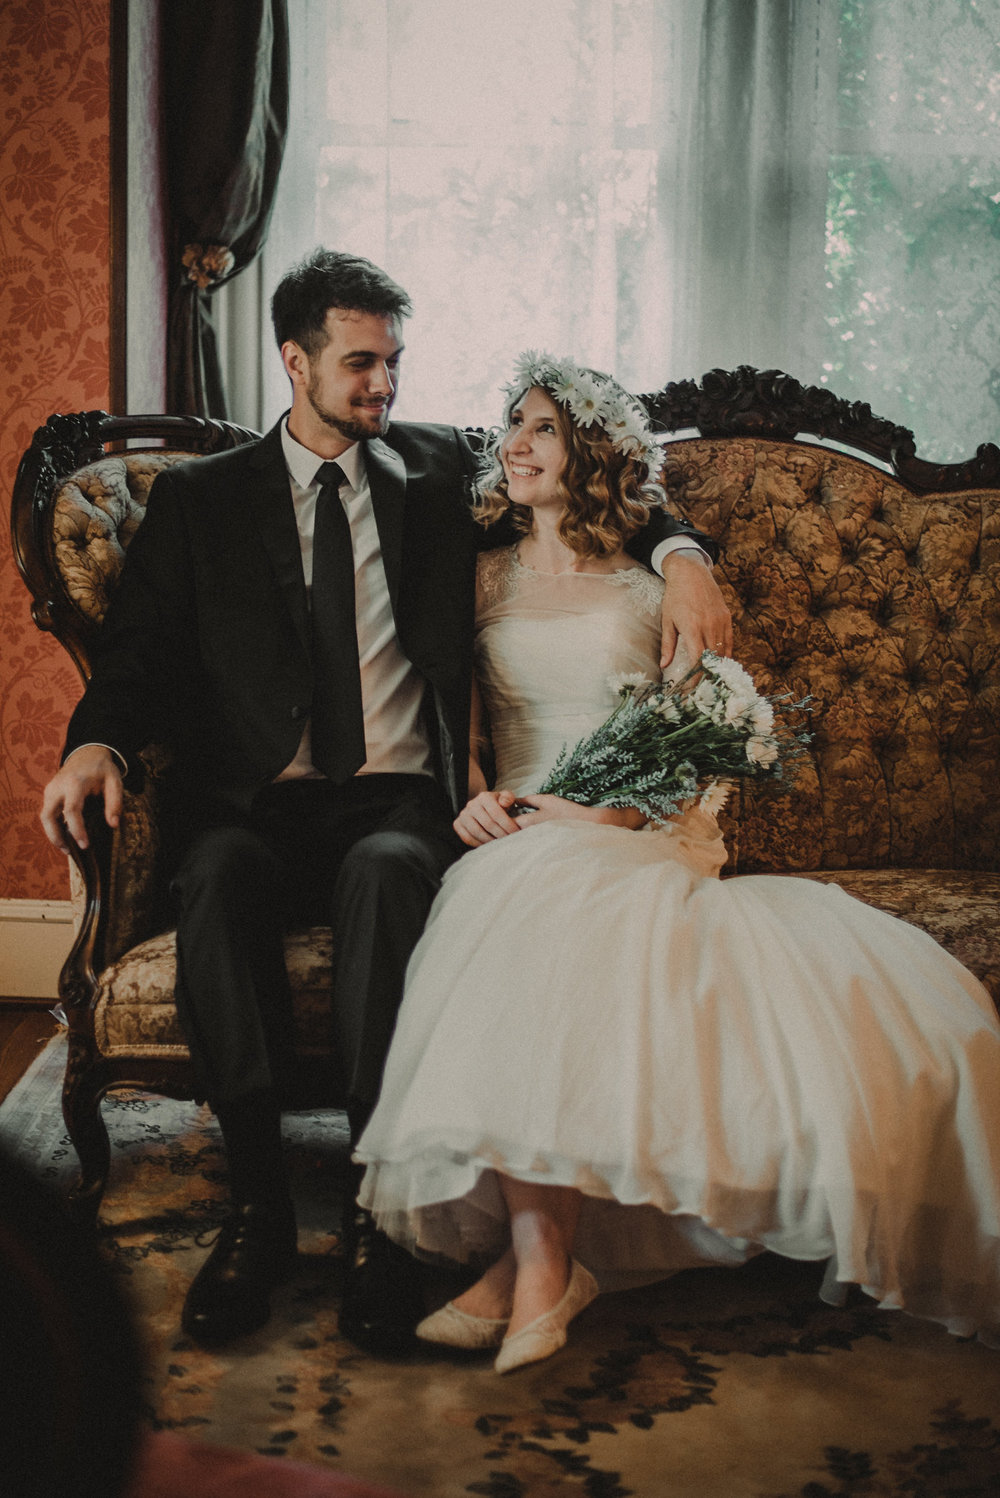 Bride and groom sitting on couch together